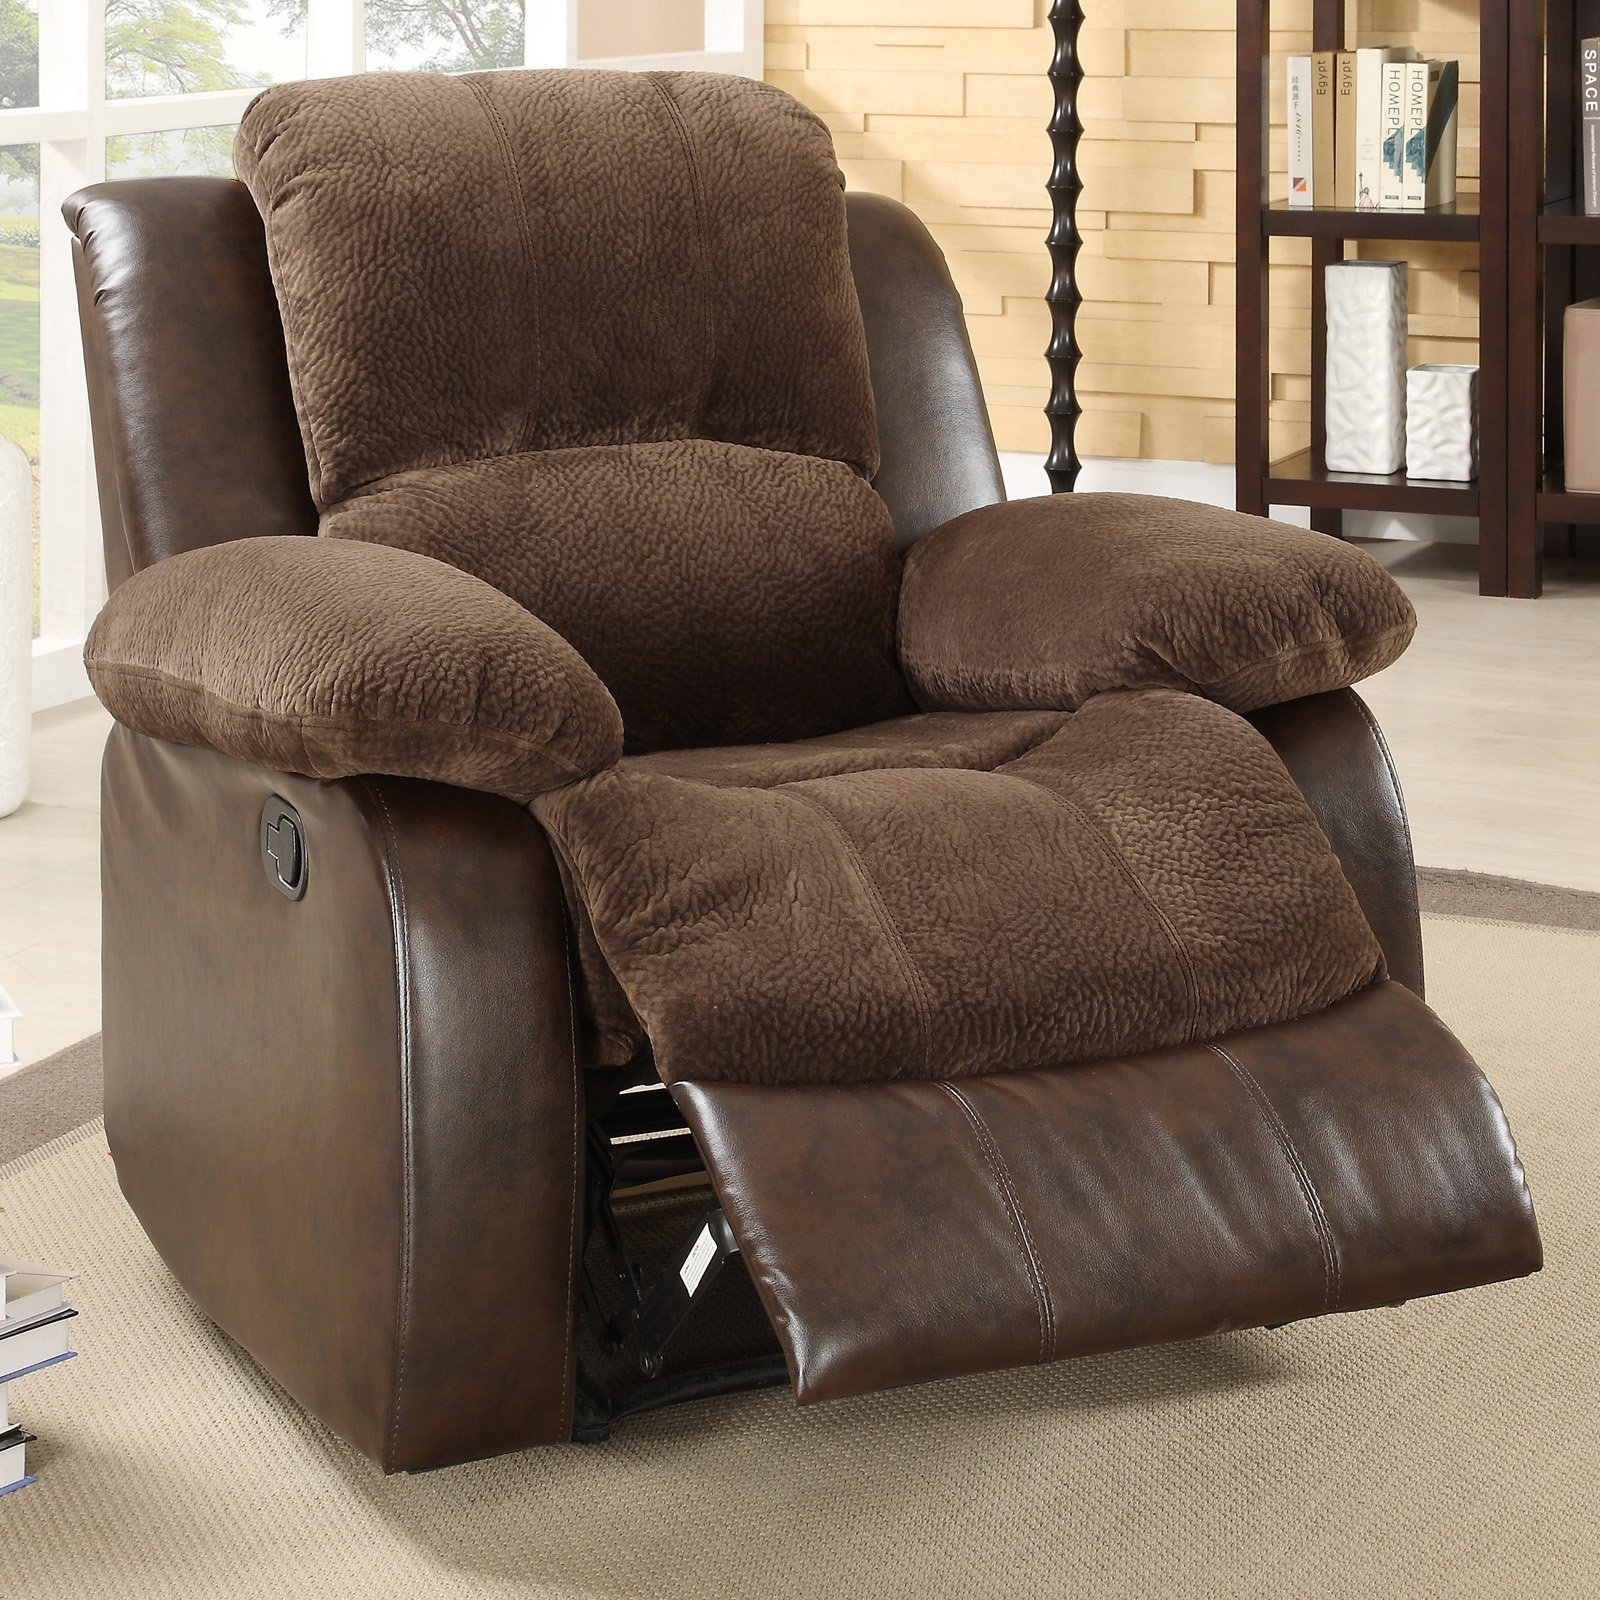 Used Recliners Ideas On Foter